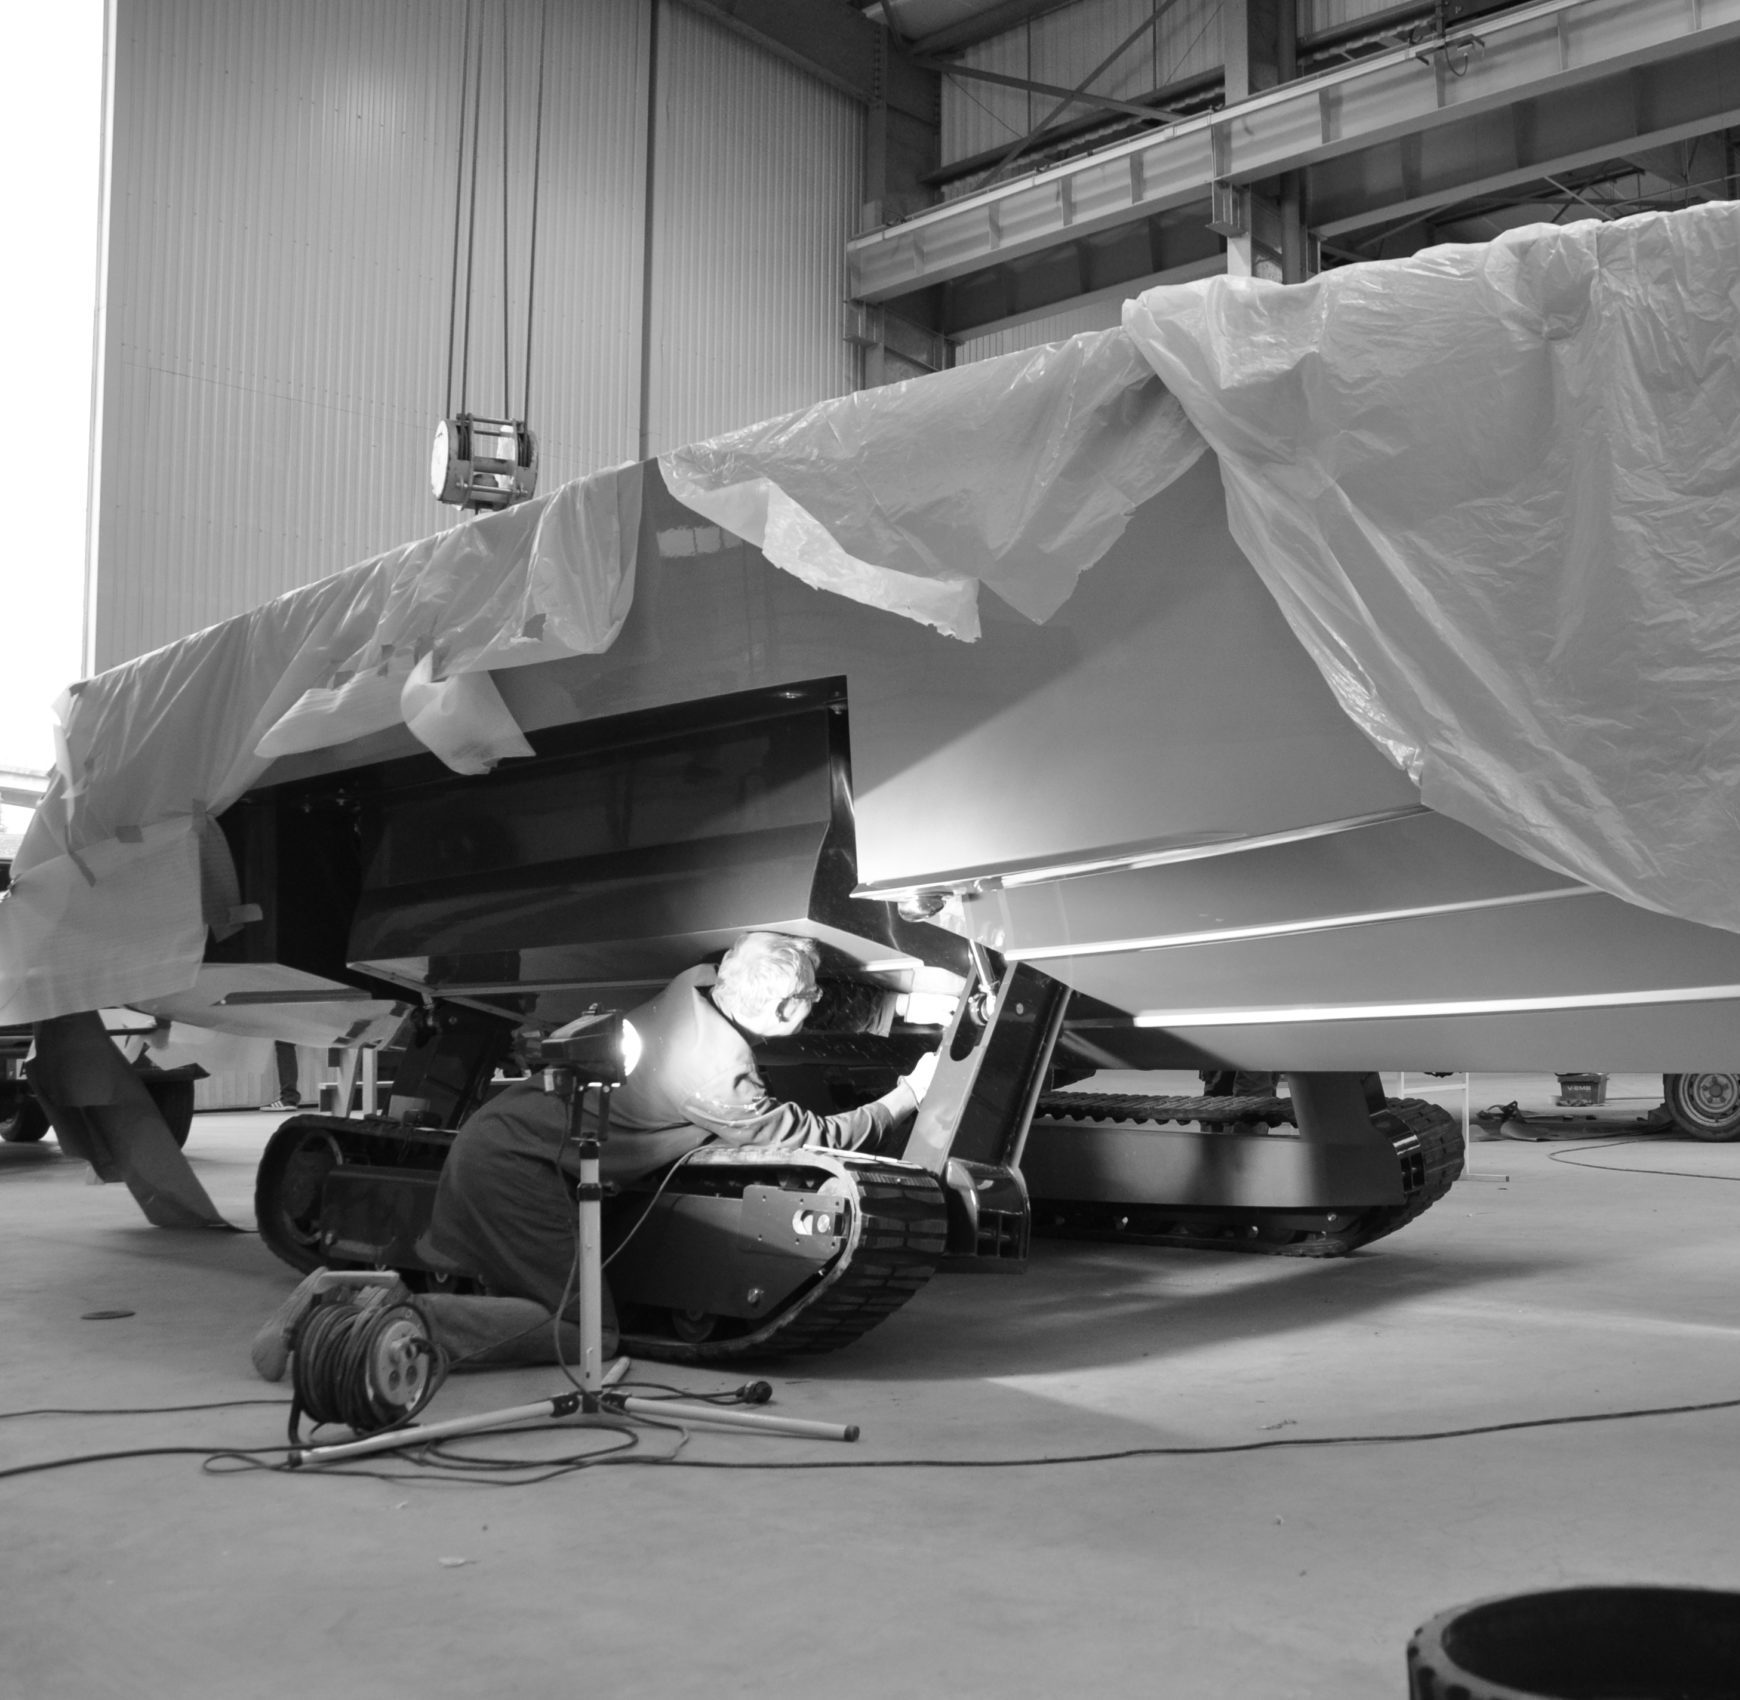 Engineer building an amphibious boat